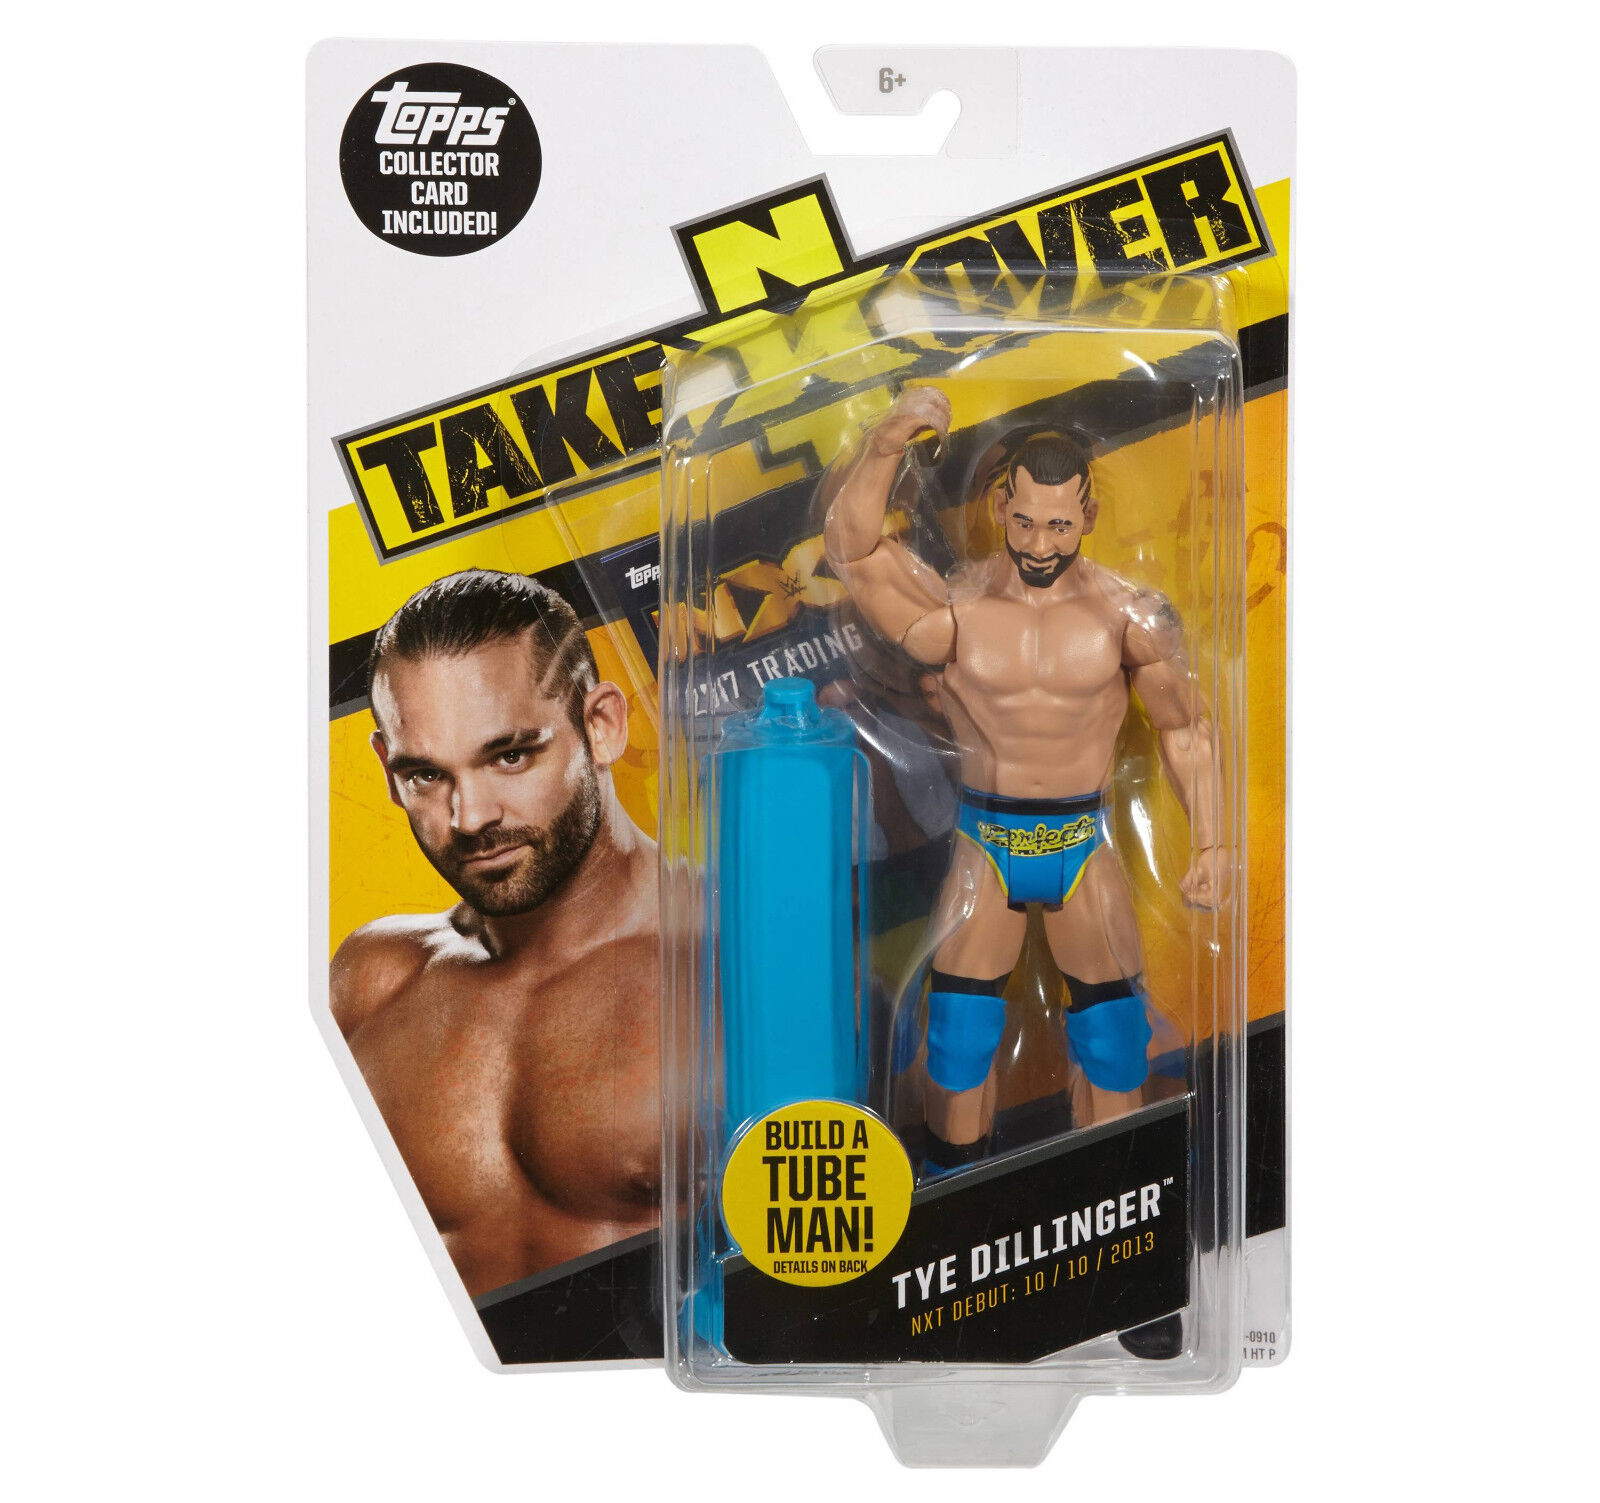 WWE NXT TAKEOVER TYE DILLINGER FIGURE BUILD A TUBE MAN TOPPS CARD PERFECT 10